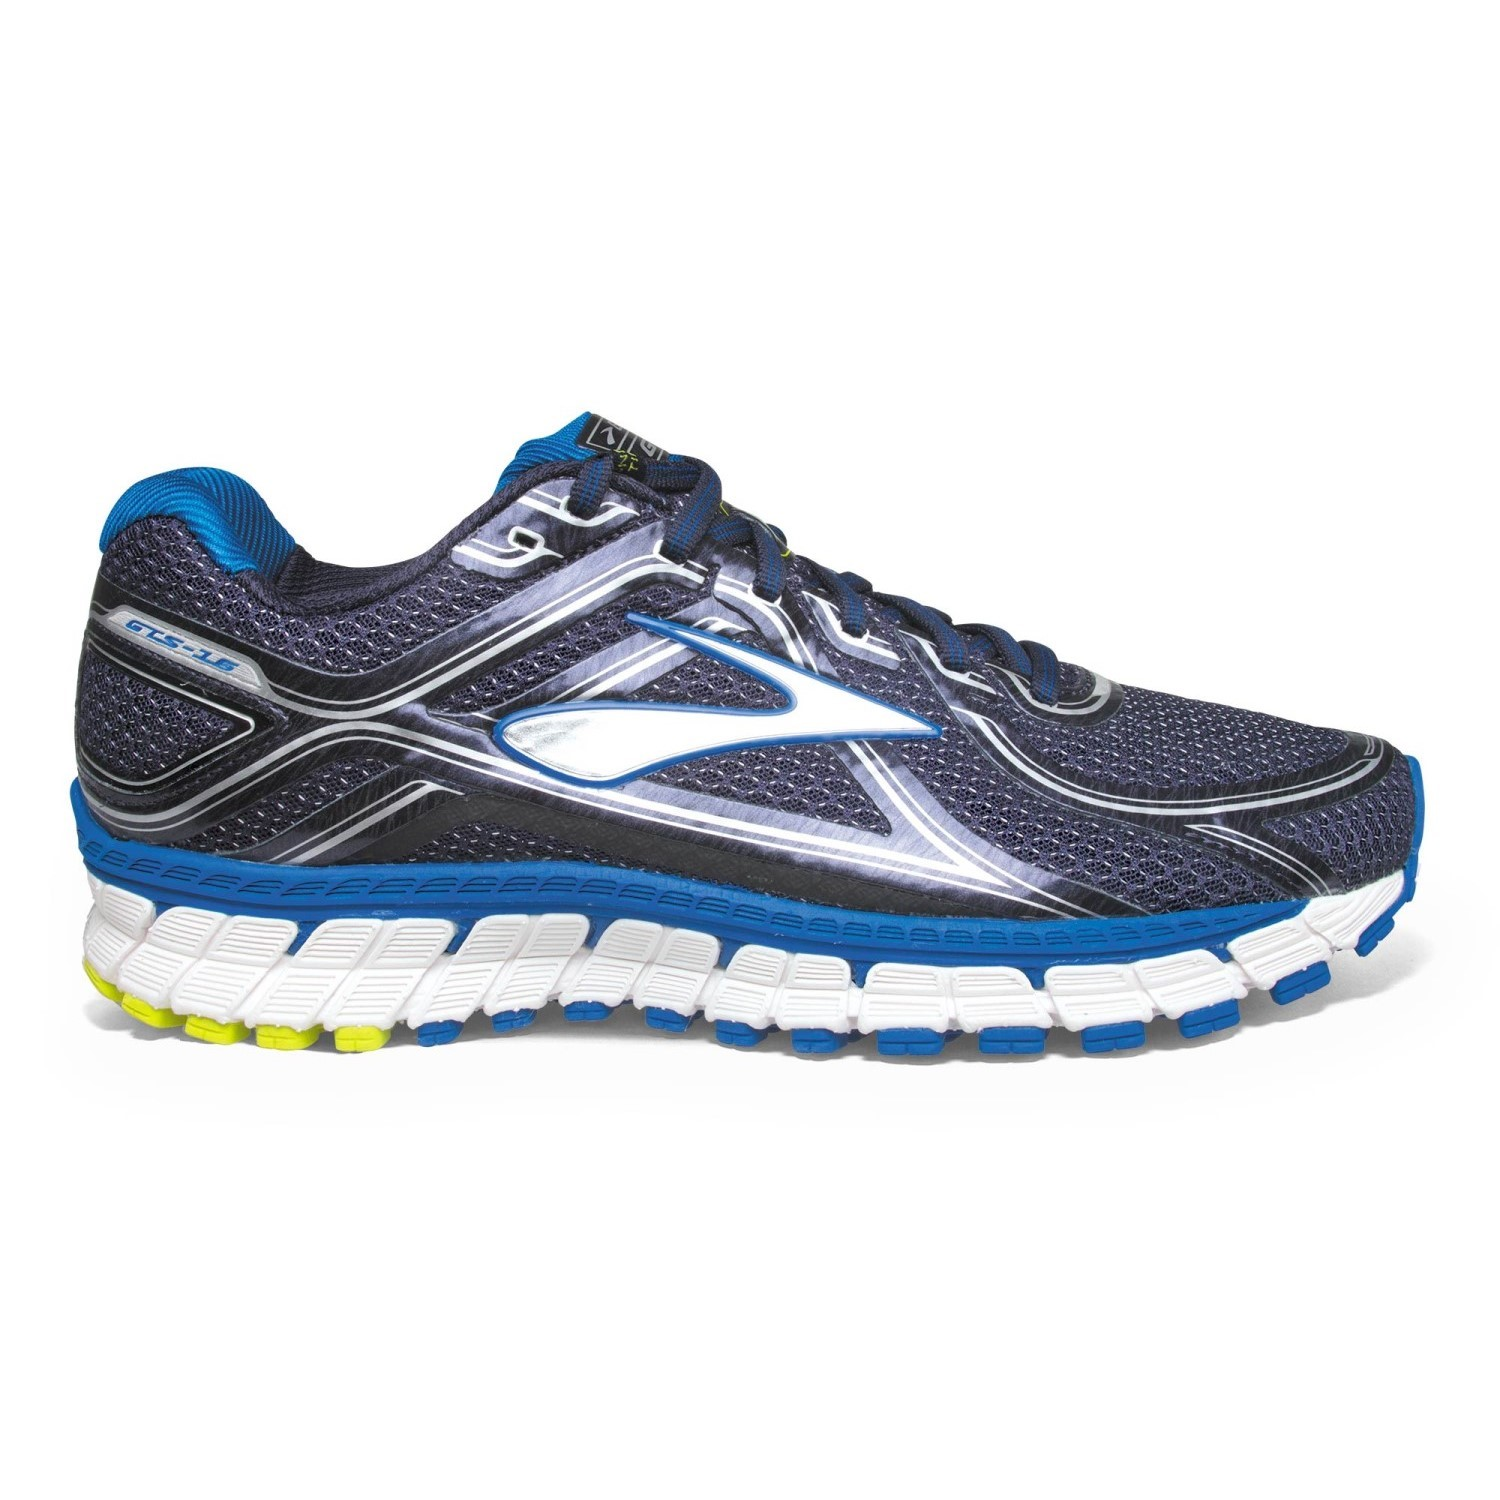 c72264720e5 ... Brooks Adrenaline GTS 16 - Mens Running Shoes ...